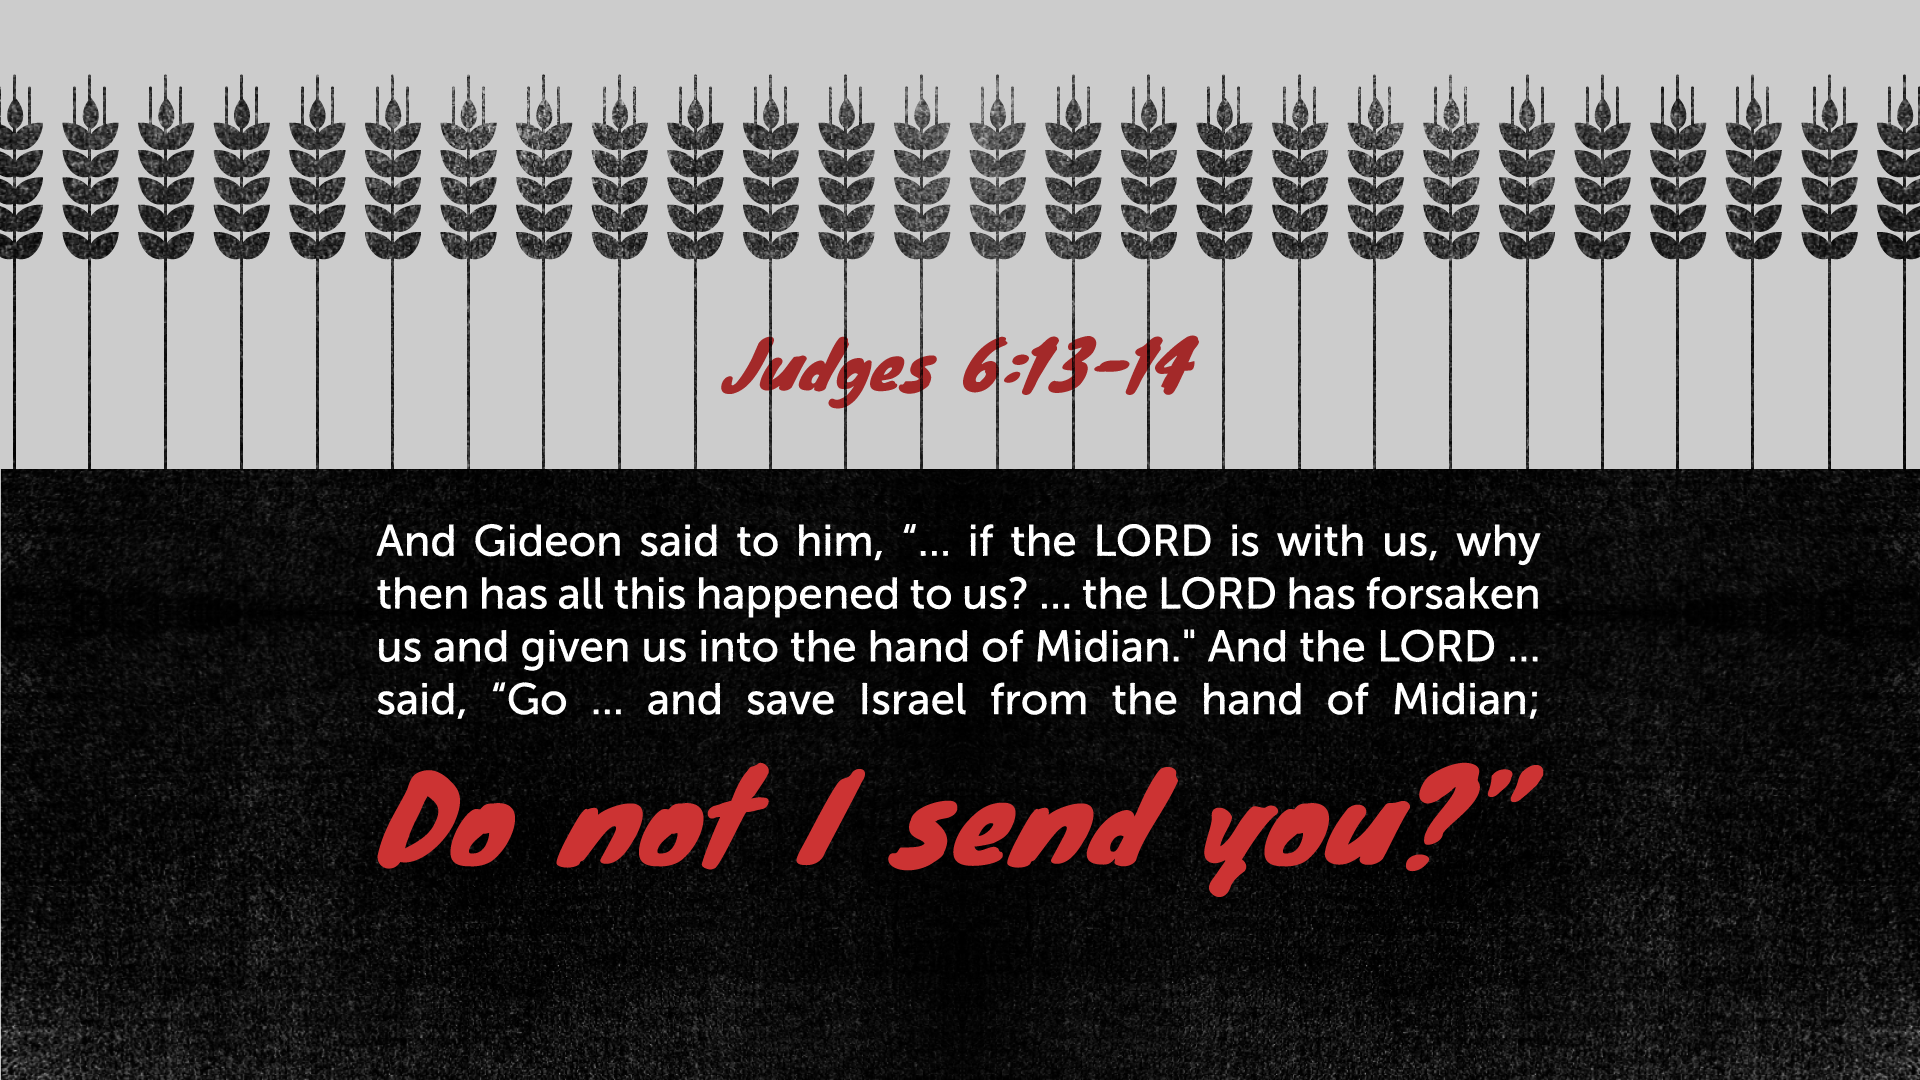 Jud.6.13-14.png